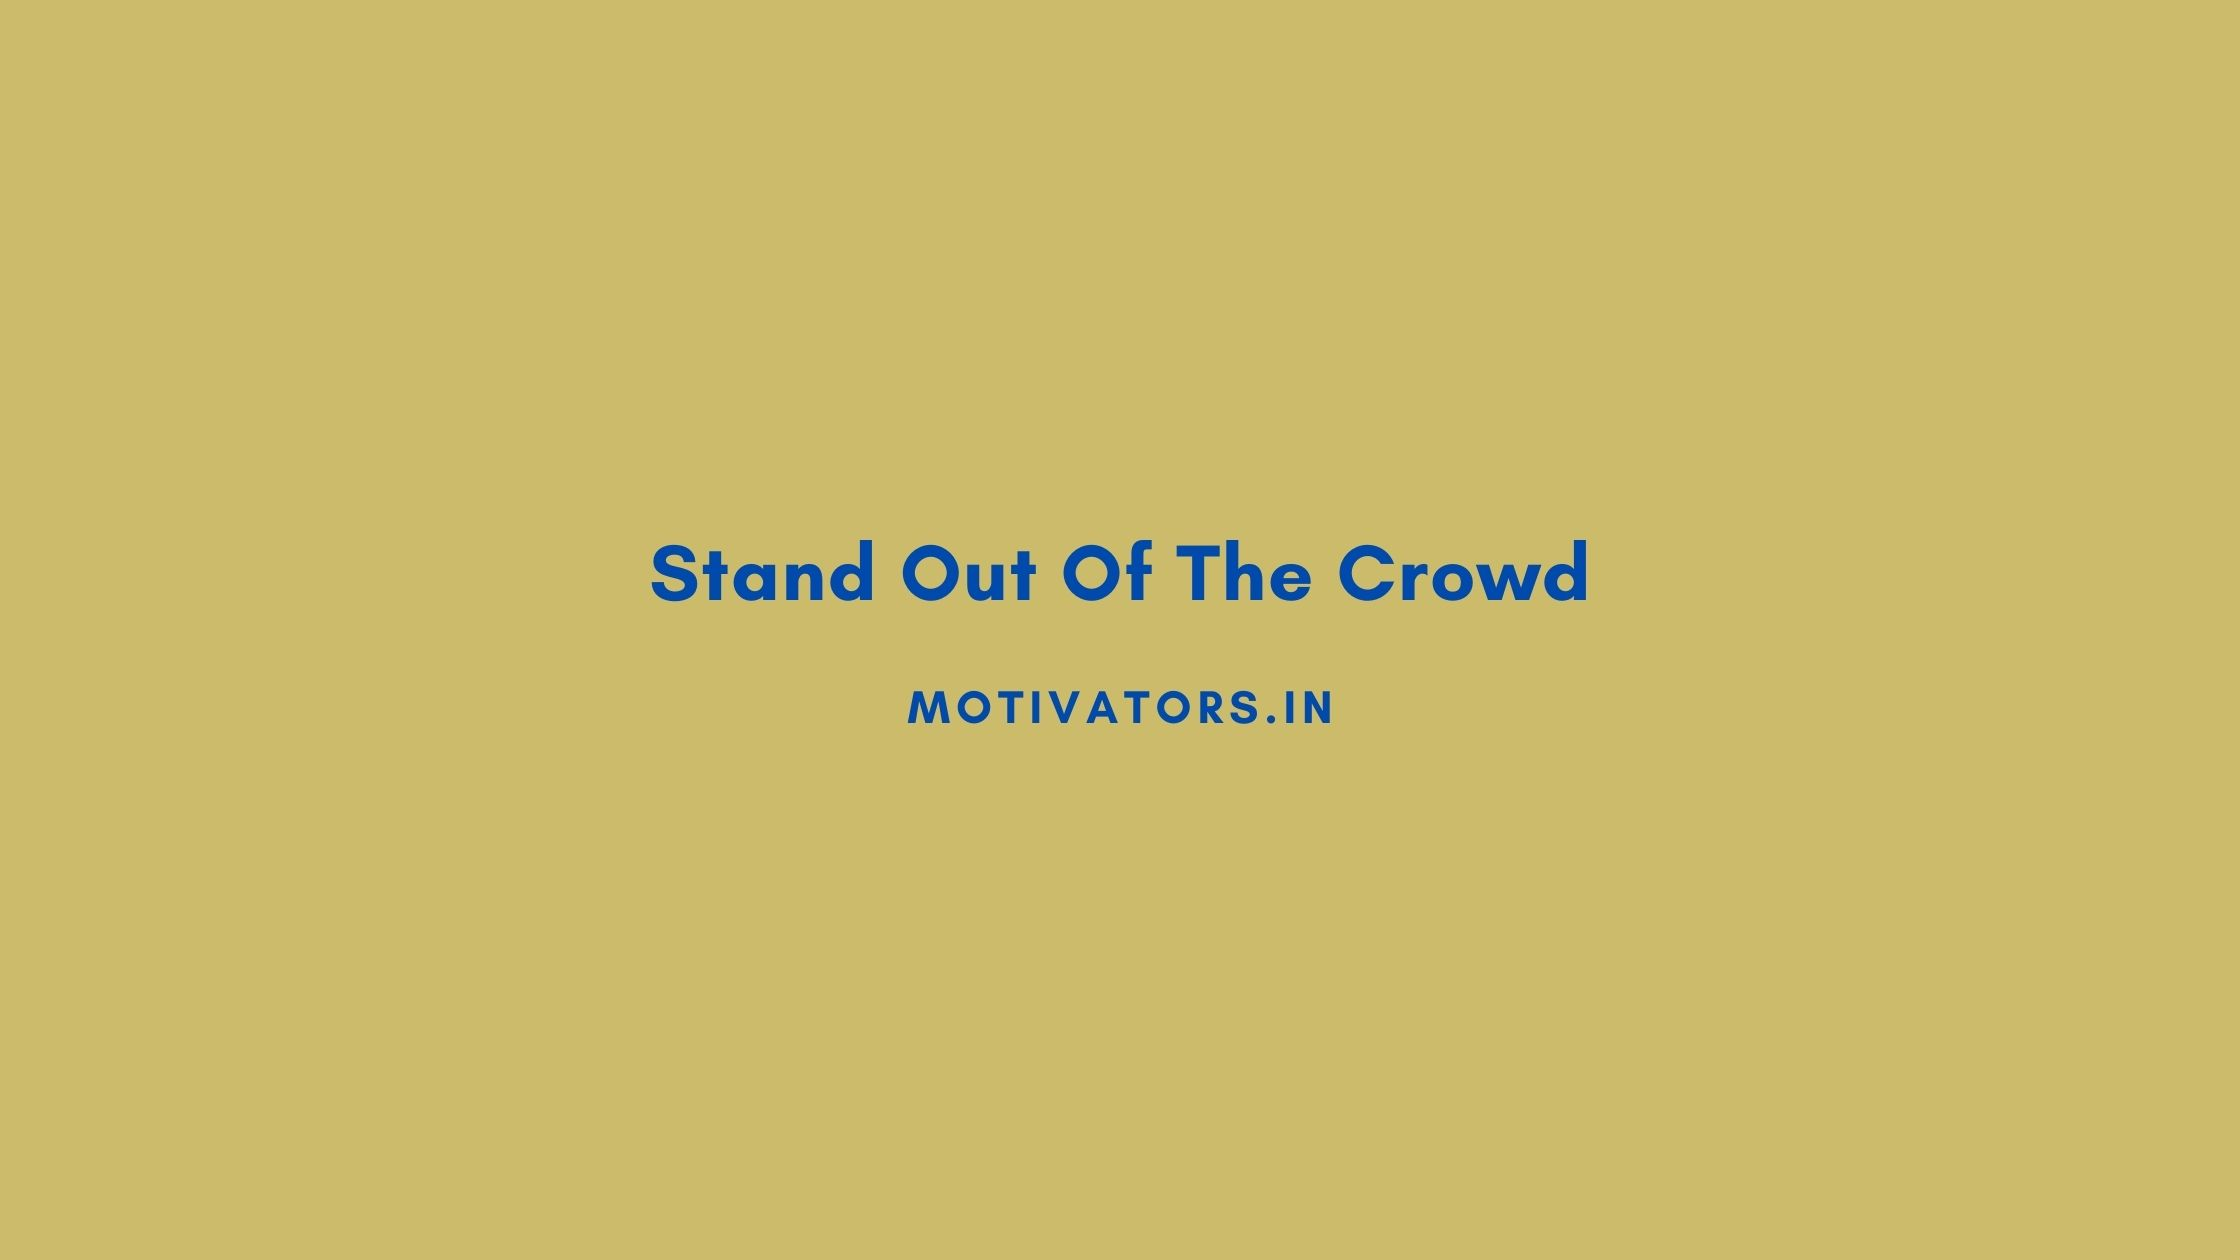 Stand Out Of The Crowd